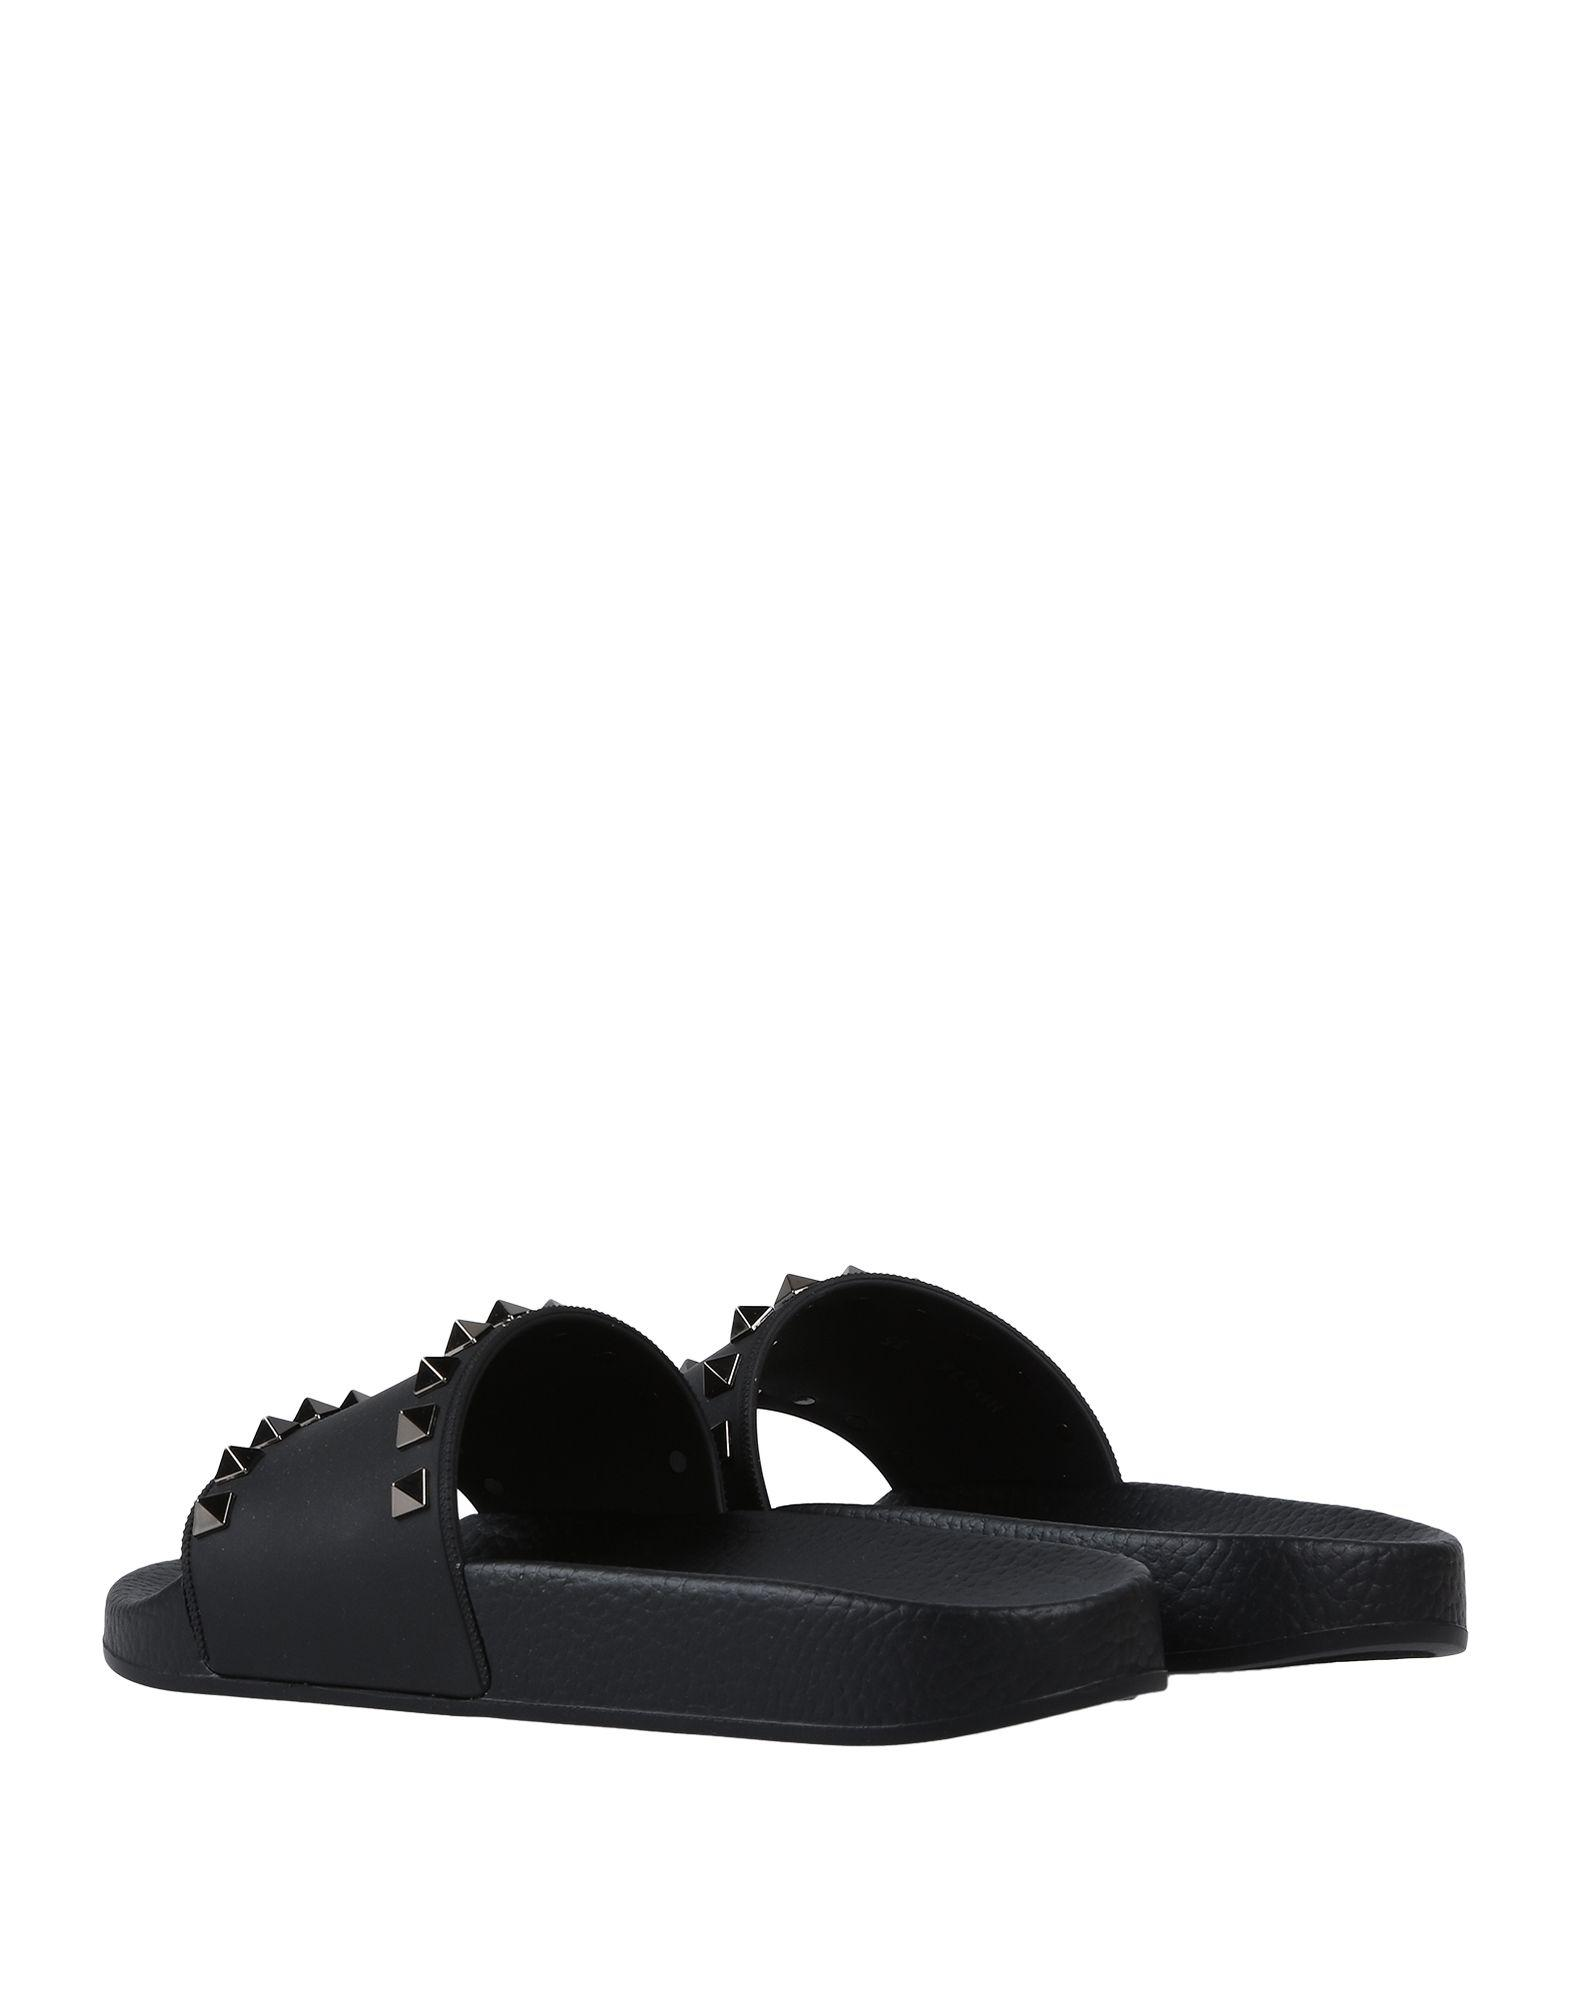 e24f18d1d46e Lyst - Valentino Sandals in Black